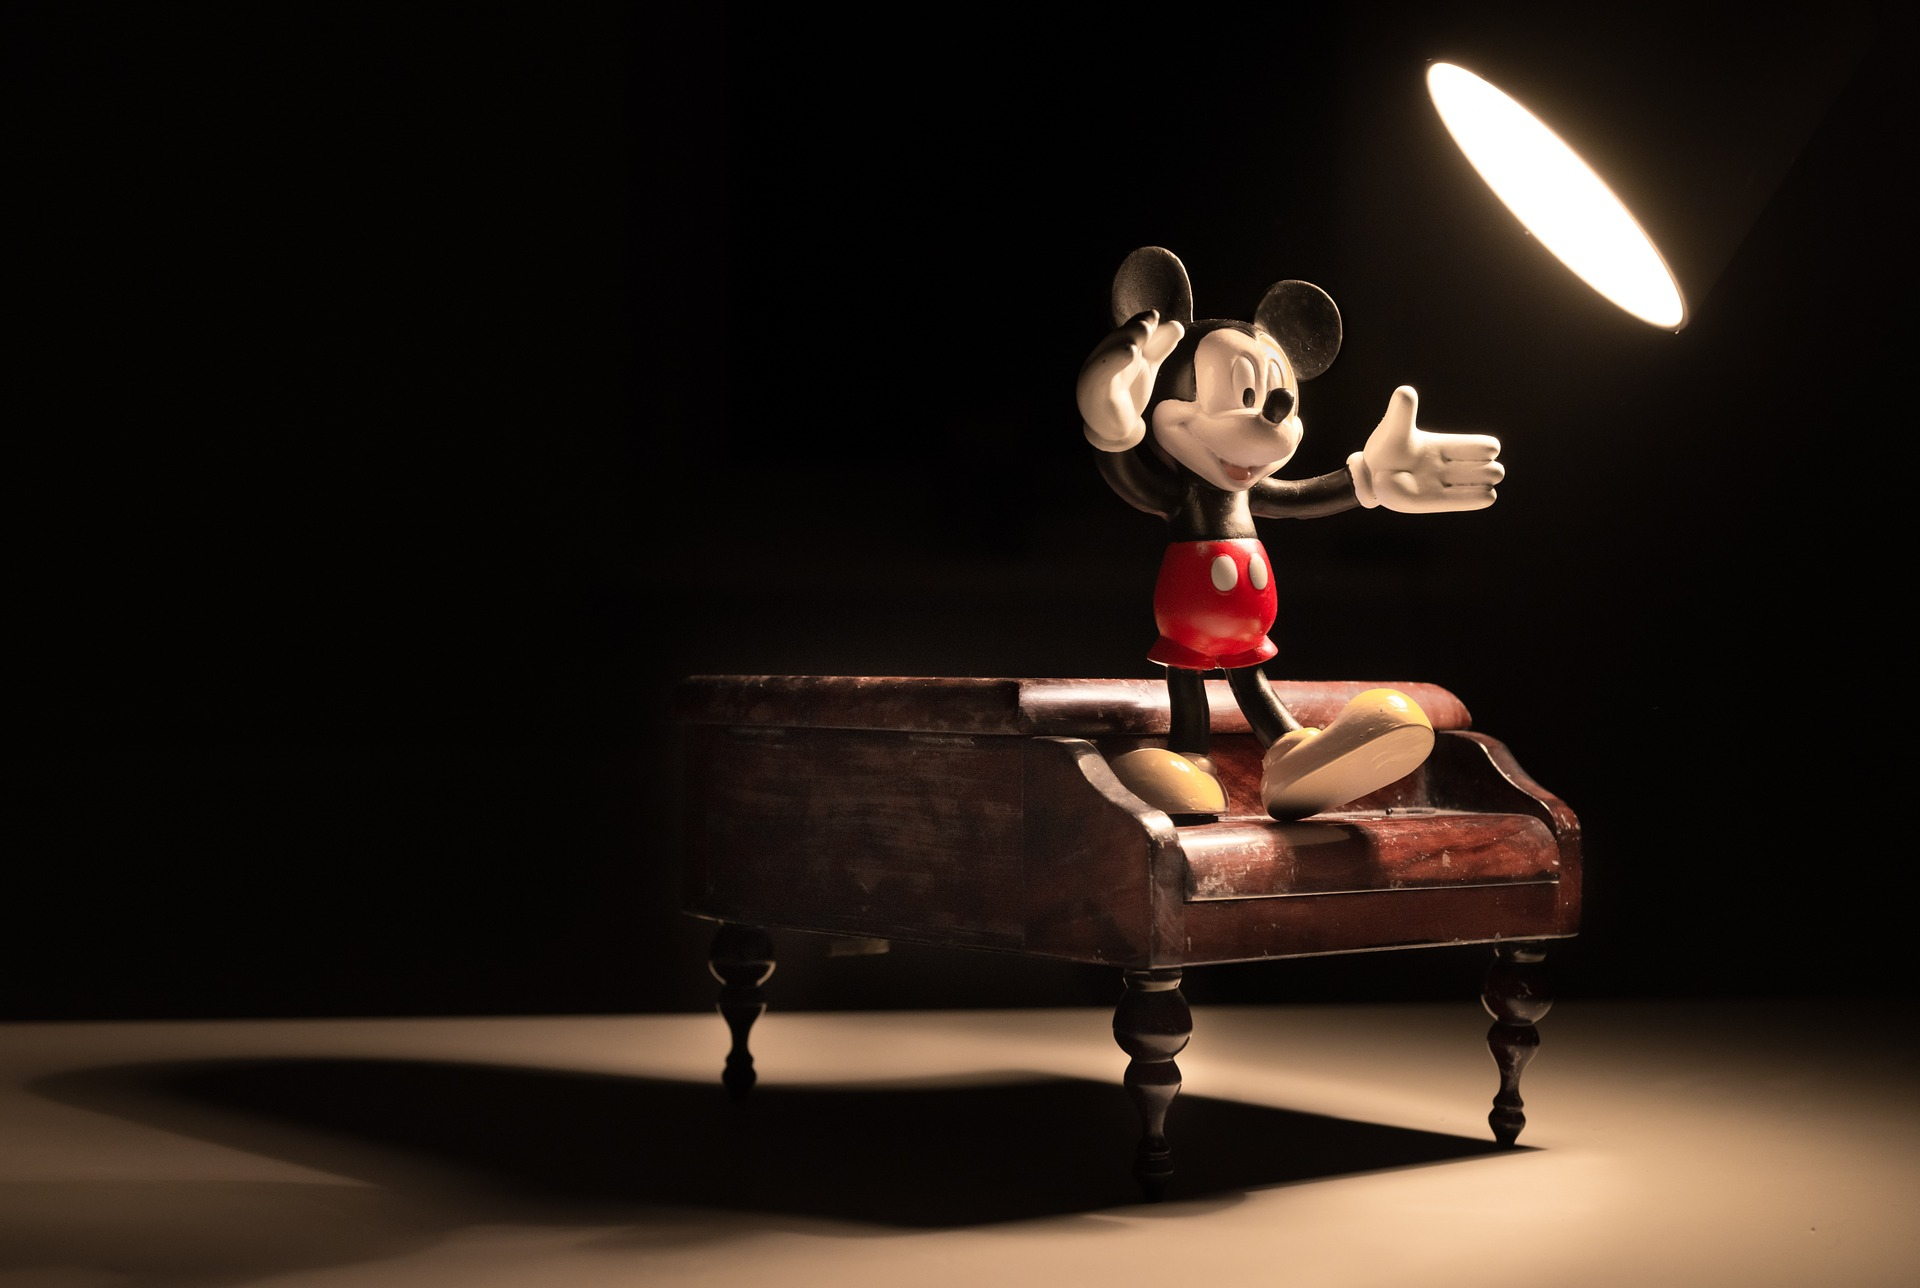 Photo of miniature Mickey Mouse figure on a piano.